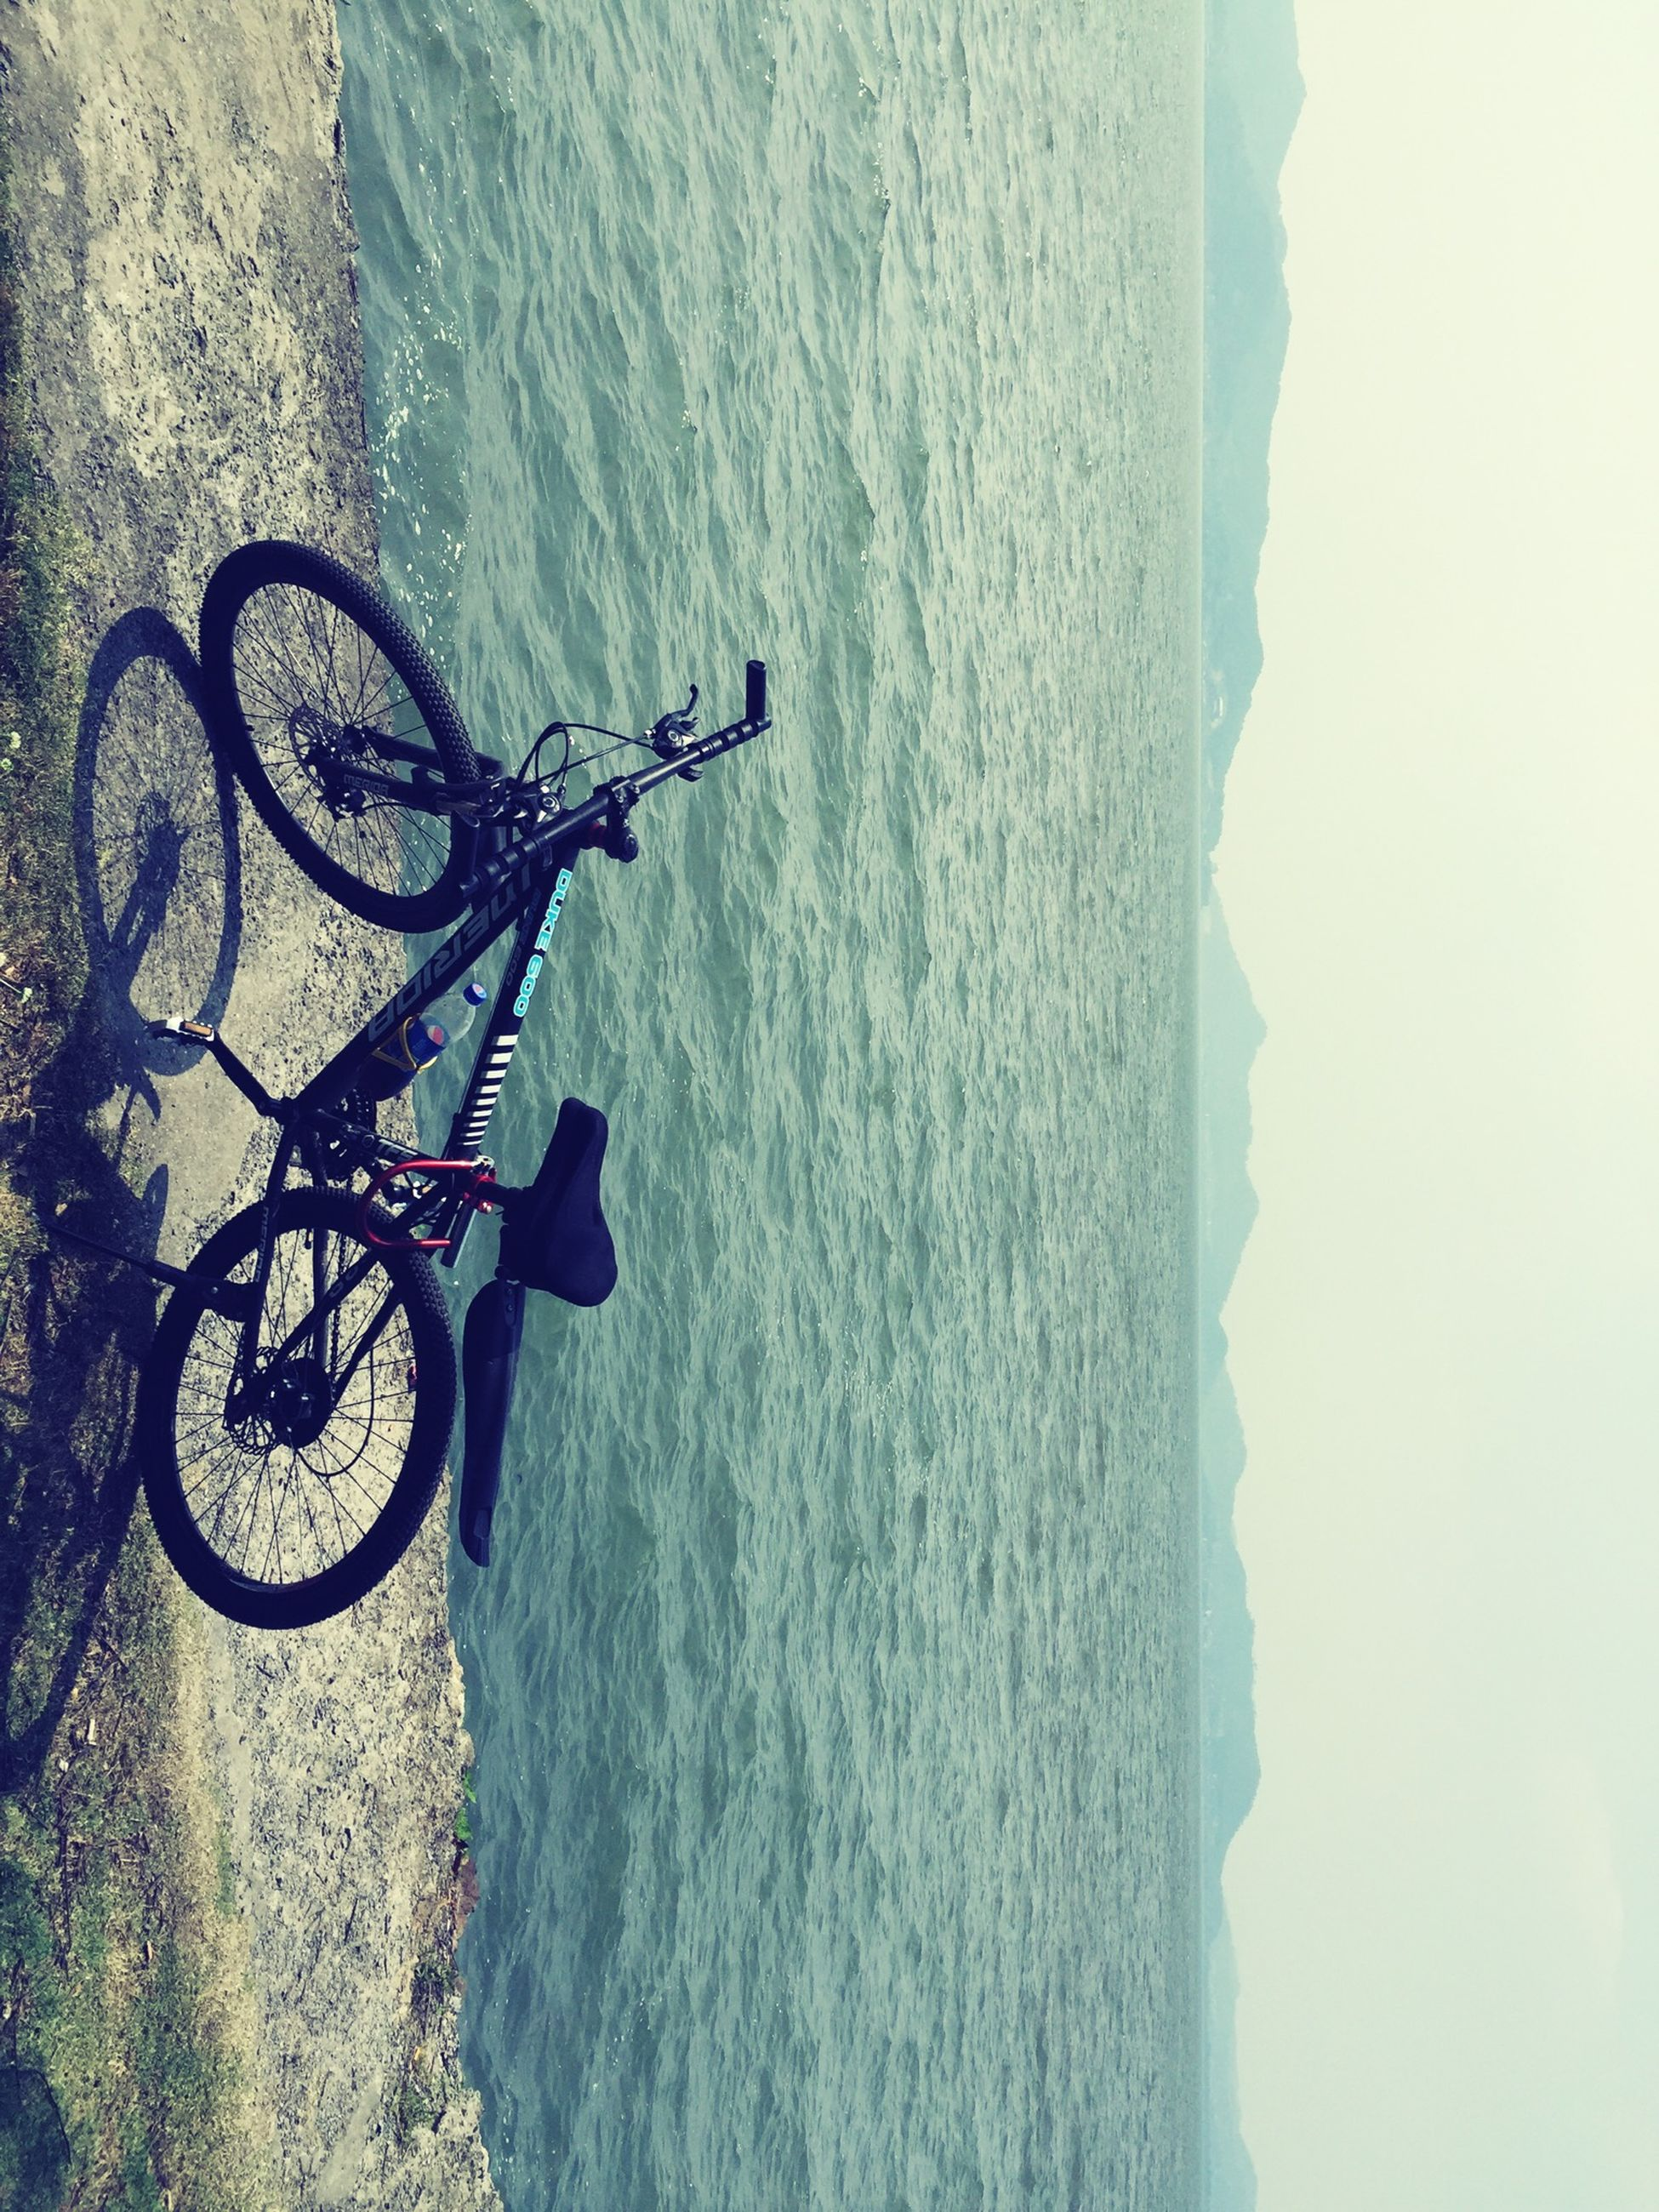 bicycle, transportation, mode of transport, land vehicle, sky, tranquility, nature, scenics, stationary, tranquil scene, riding, beauty in nature, parking, day, travel, mountain, water, sunlight, parked